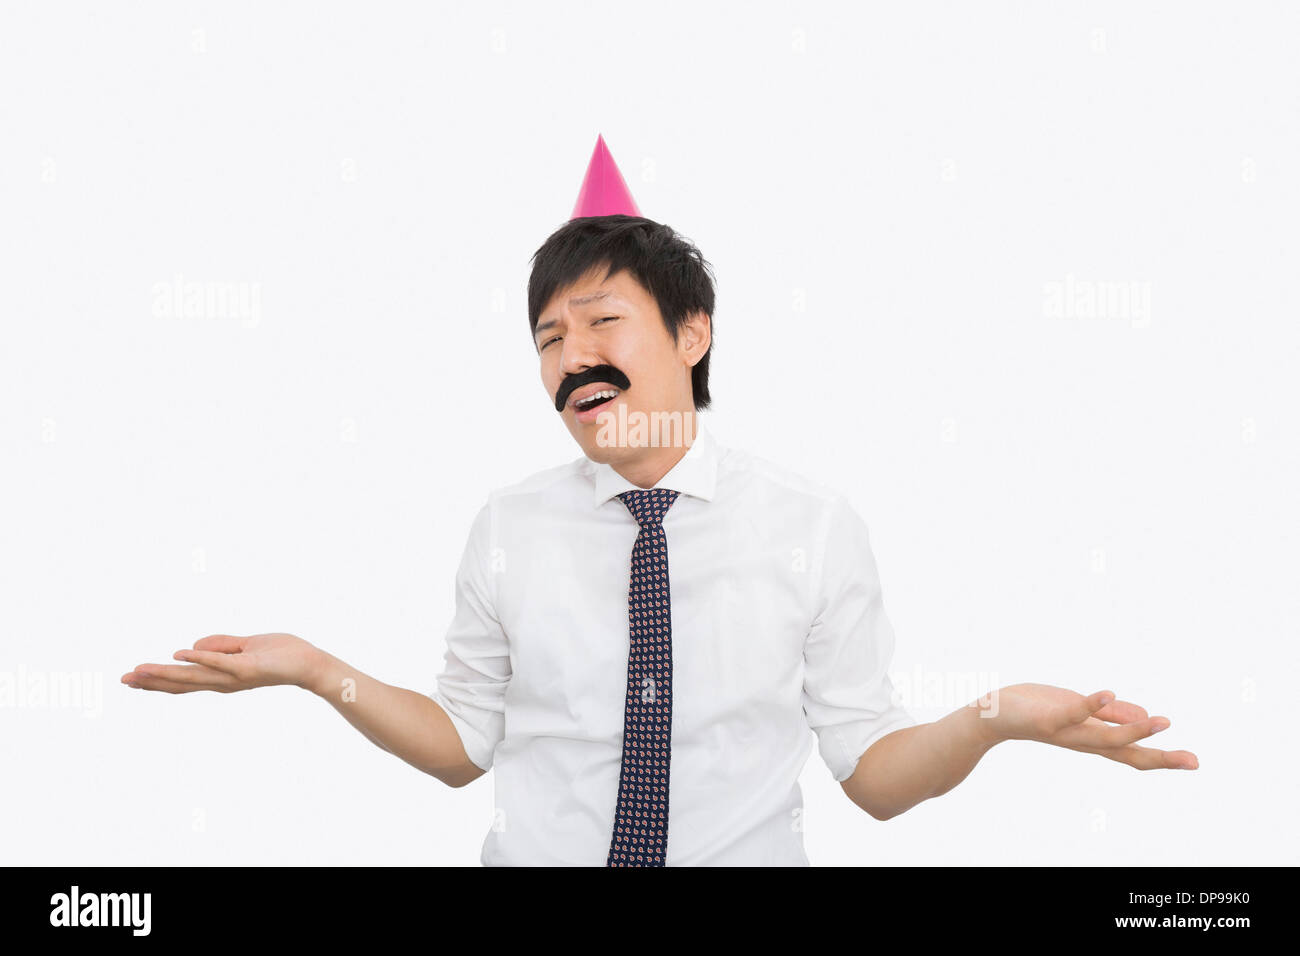 Mid adult businessman shrugging his shoulders over white background - Stock Image